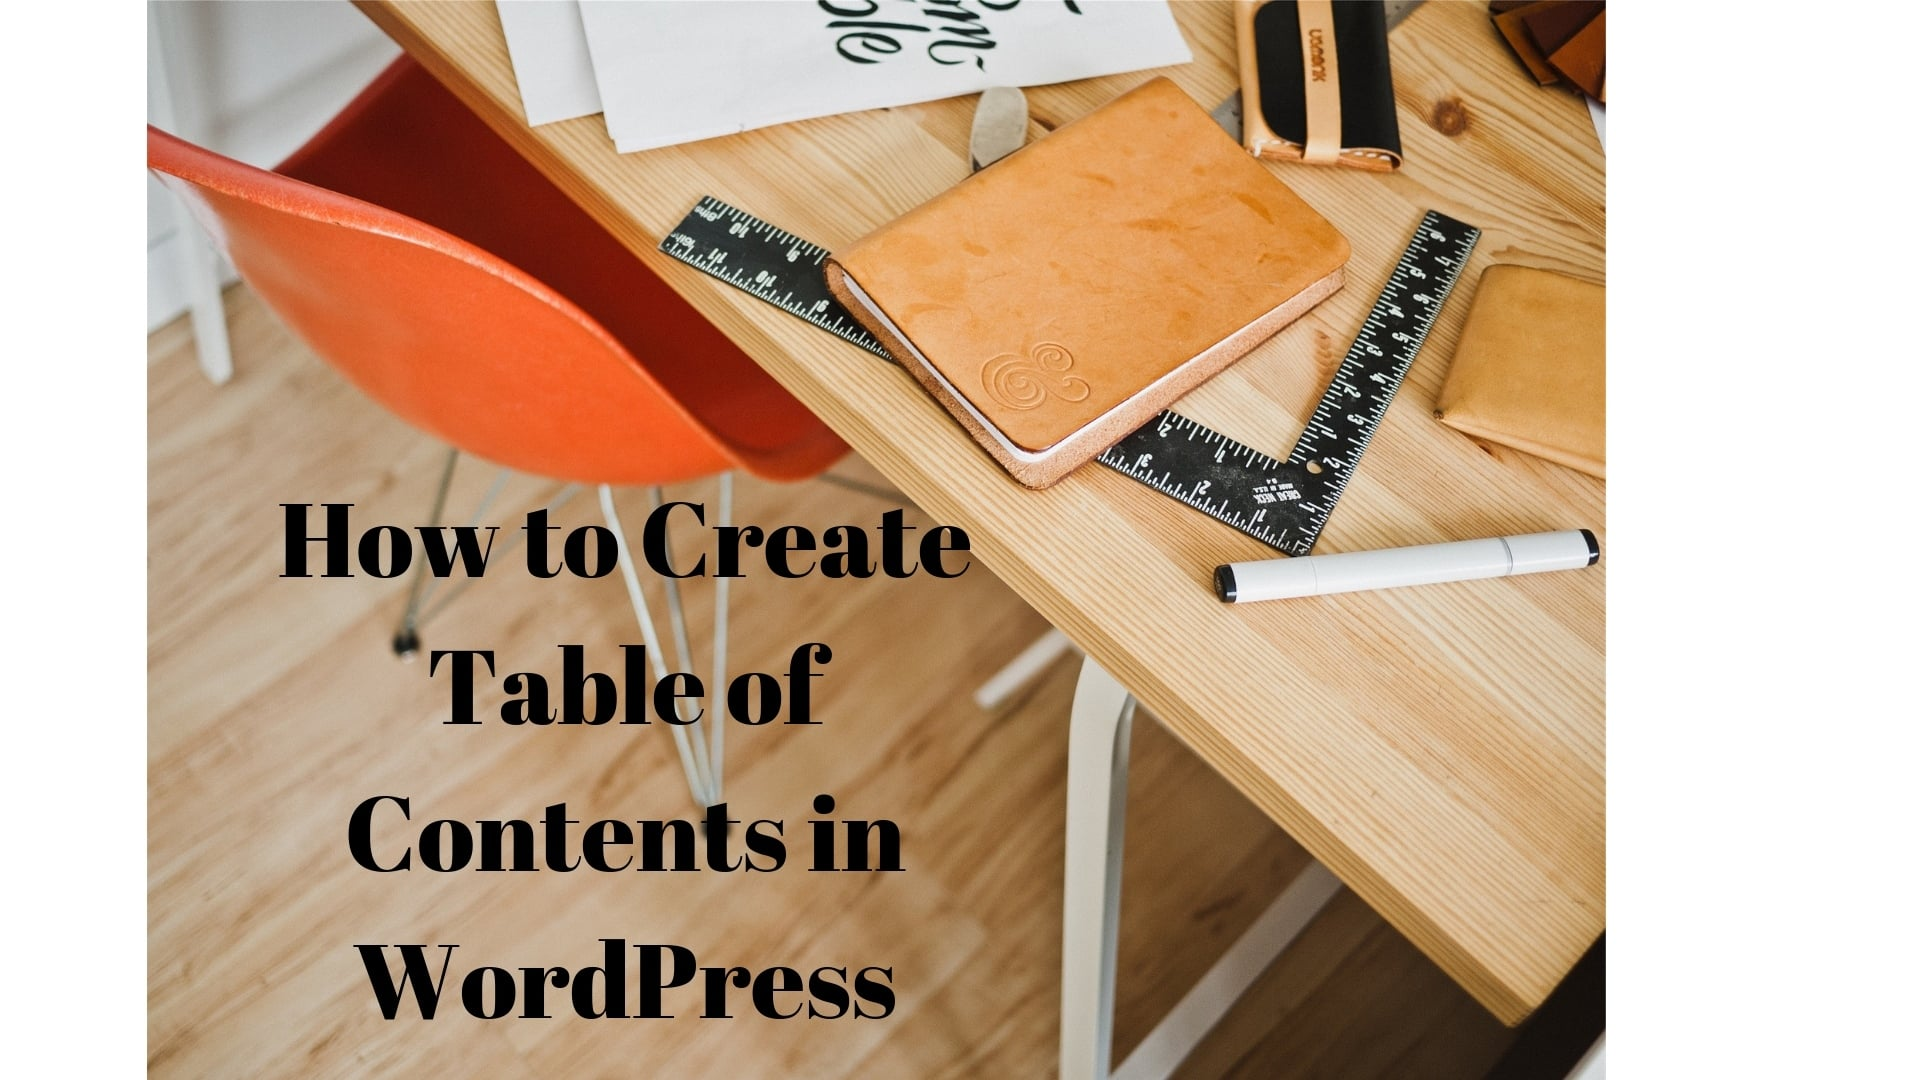 how to create table of contents